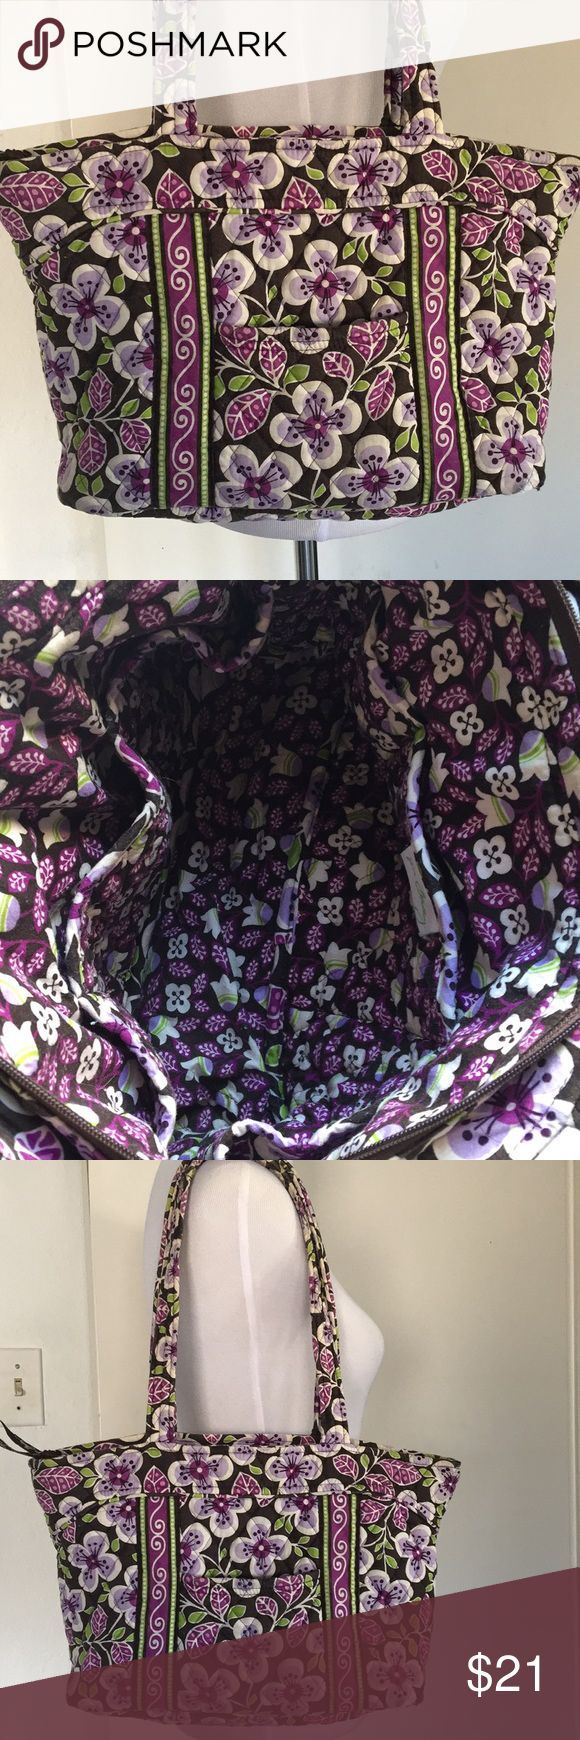 "Vera Bradley Plum Petals Zip Purse Small tote bag Really nice used condition- wear visible on straps (underside) and at bottom right corner (see close up)  Inside excellent- 6 interior skip pockets.  Top zip, front slip pocket.  Strap drop 10"" 15"" W 9.5"" L 2"" D Vera Bradley Bags Shoulder Bags"